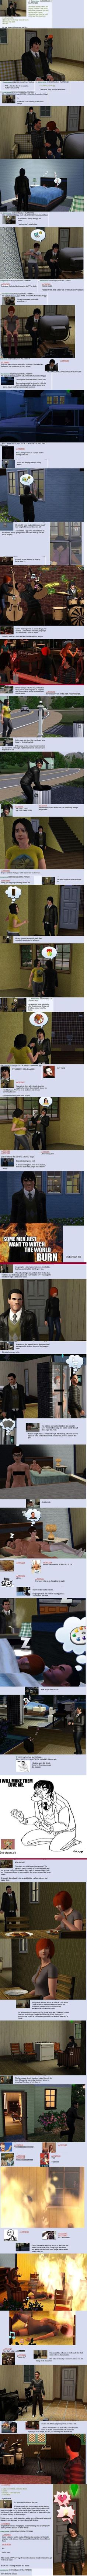 Goldie: A Sims love story  // funny pictures - funny photos - funny images - funny pics - funny quotes - #lol #humor #funnypictures